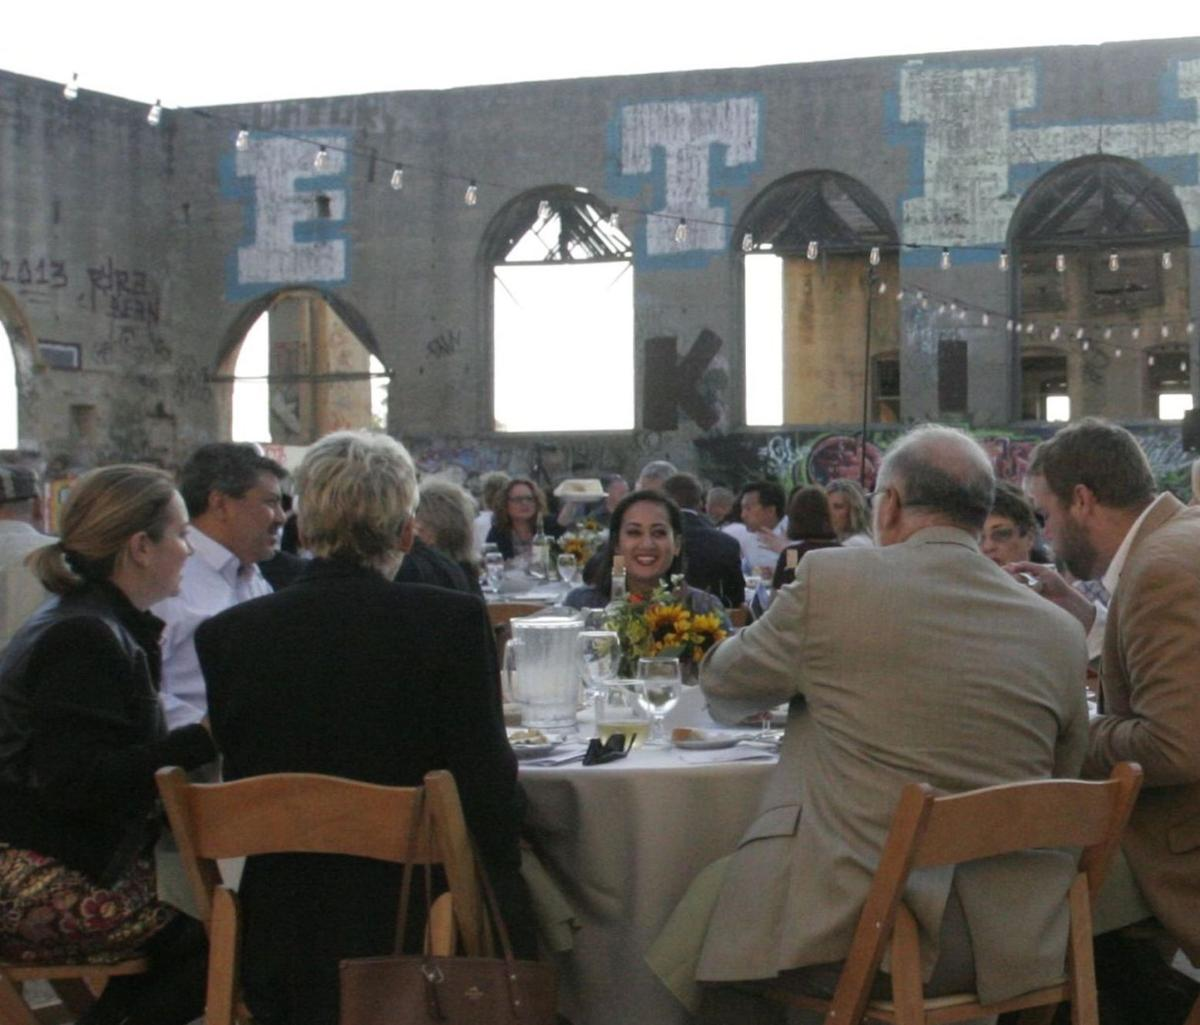 Dinner Evening at the Ruins gala